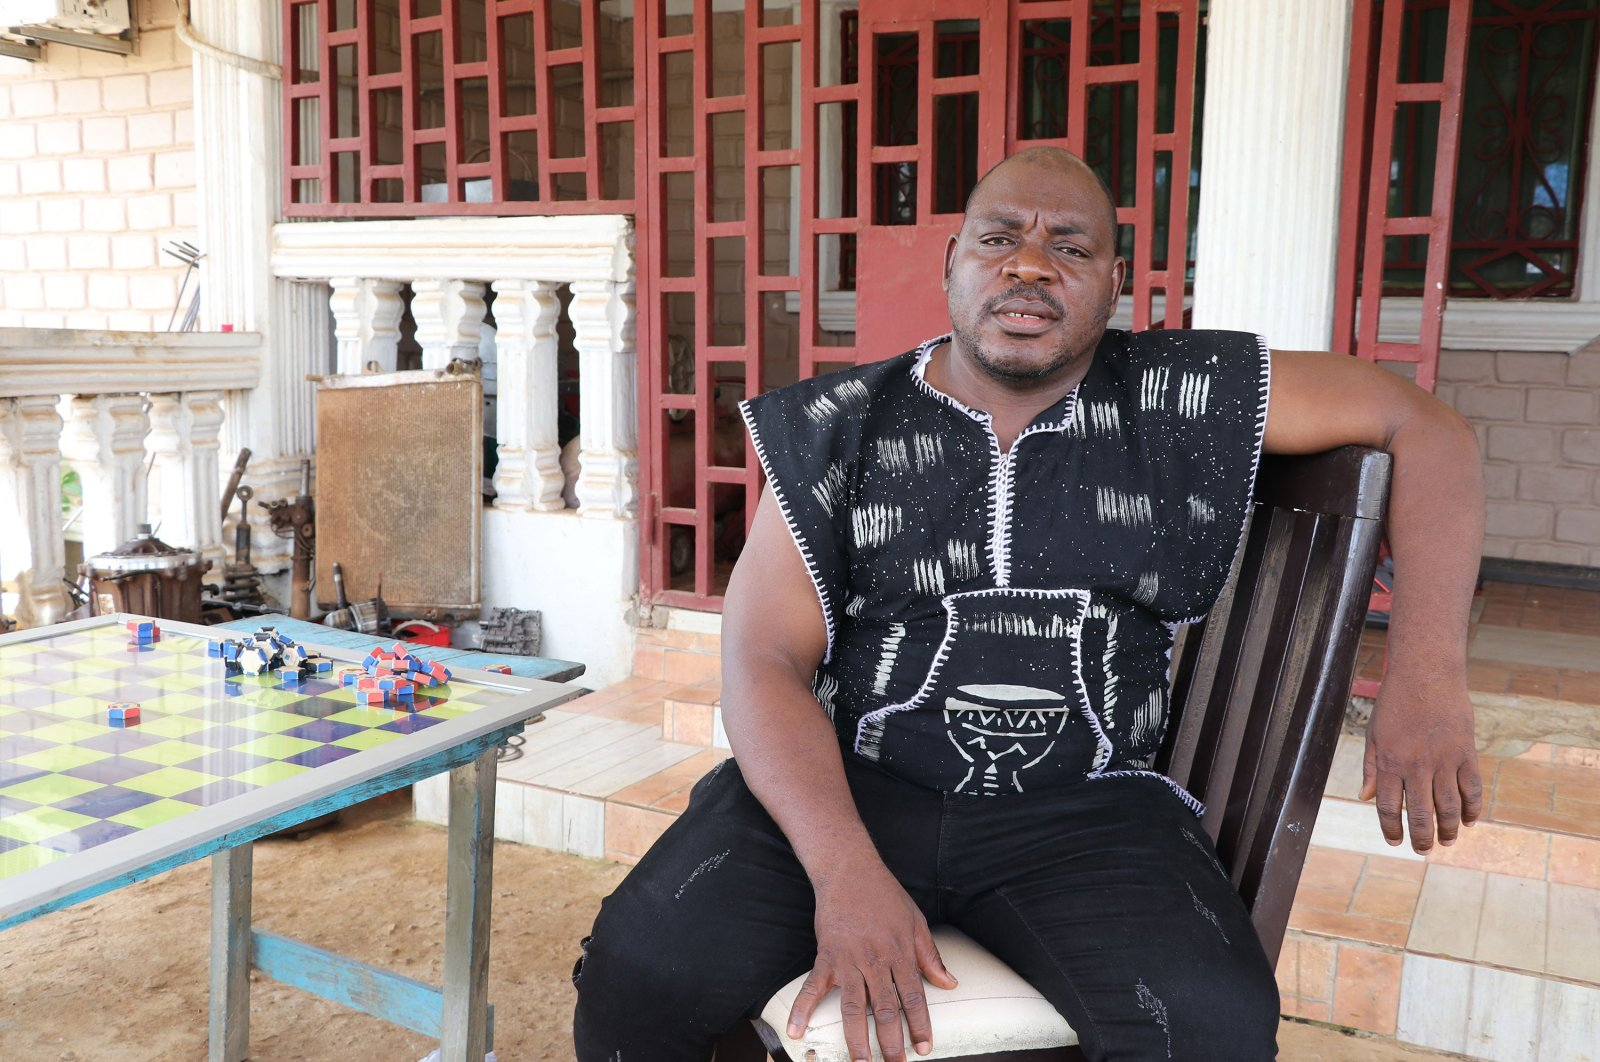 """Former Liberian rebel Joshua Blayhi, also known as """"General Butt Naked,"""" poses for a portrait at his compound in Monrovia, Liberia, June 8, 2021. (AFP Photo)"""